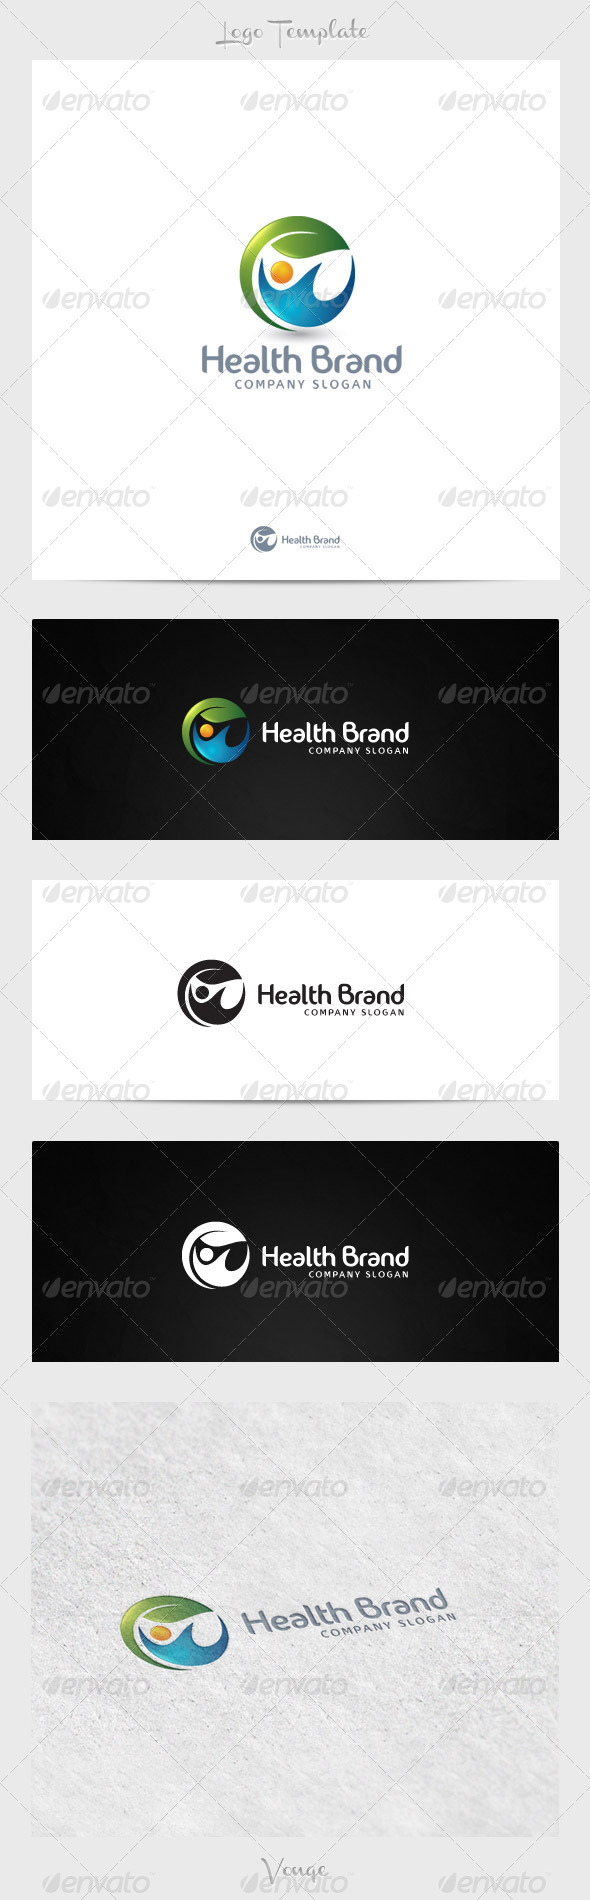 The Health Brand